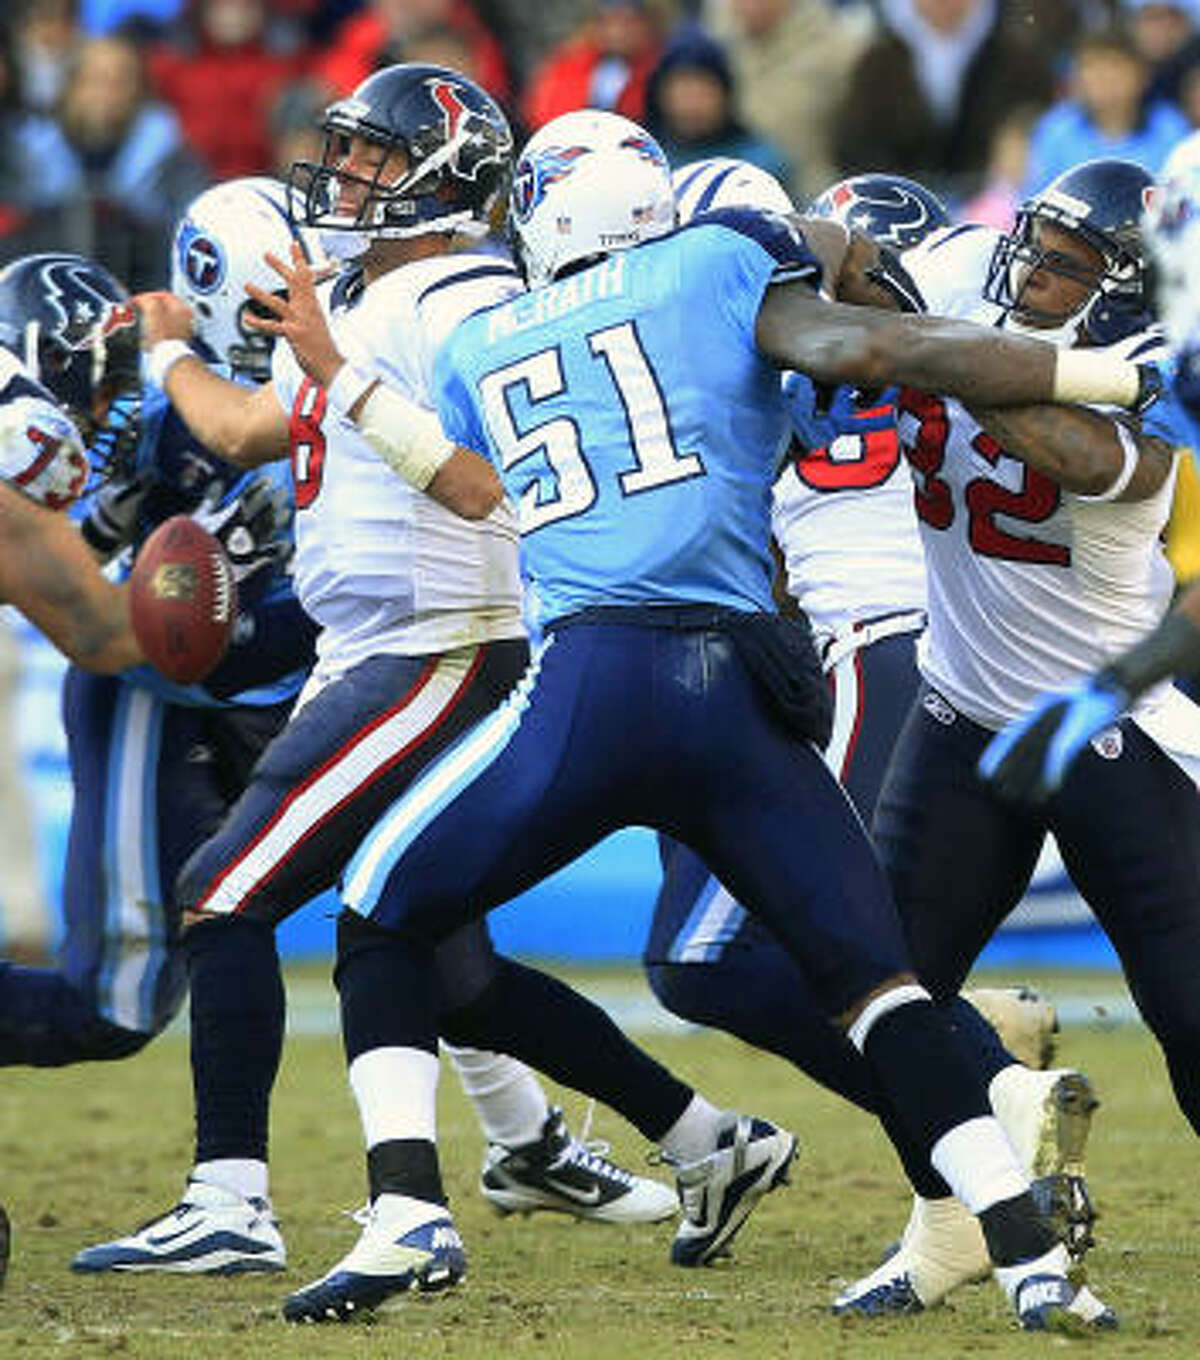 Texans quarterback Matt Schaub (8) fumbles after having the ball knocked out of his hand by Titans defensive end Jason Babin (obscured) and being pressured by linebacker Gerald McRath (51) during the fourth quarter.